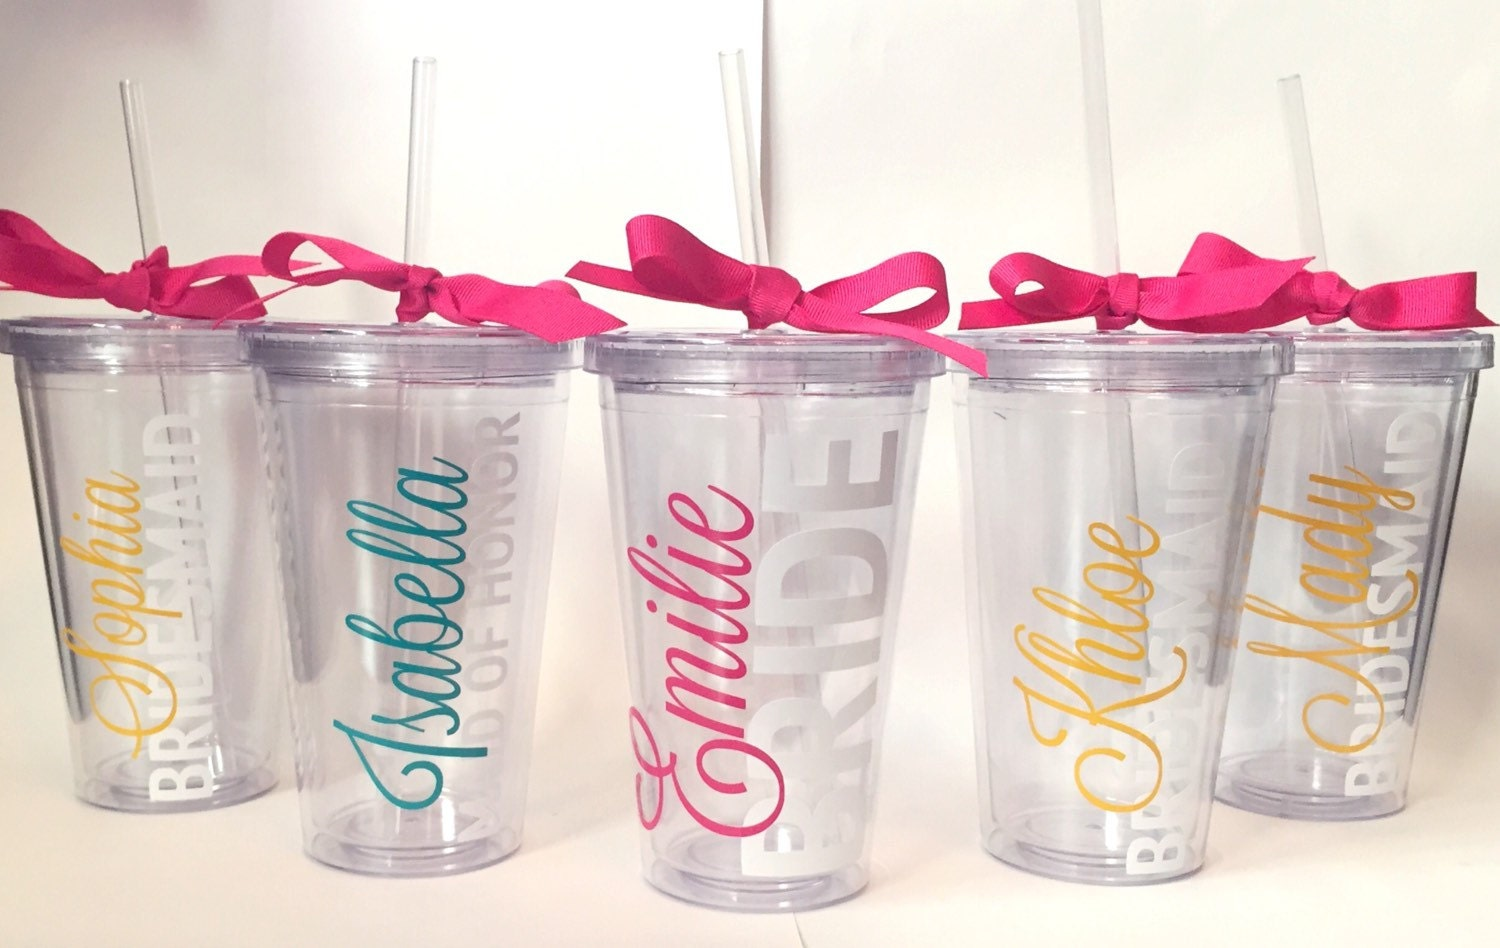 Wedding Bridal Party Gifts 50pcs free shipping wedding favor shoe bottle opener its a personalized bridal party gifts bride tumbler by partyfor6 ts partyfor6